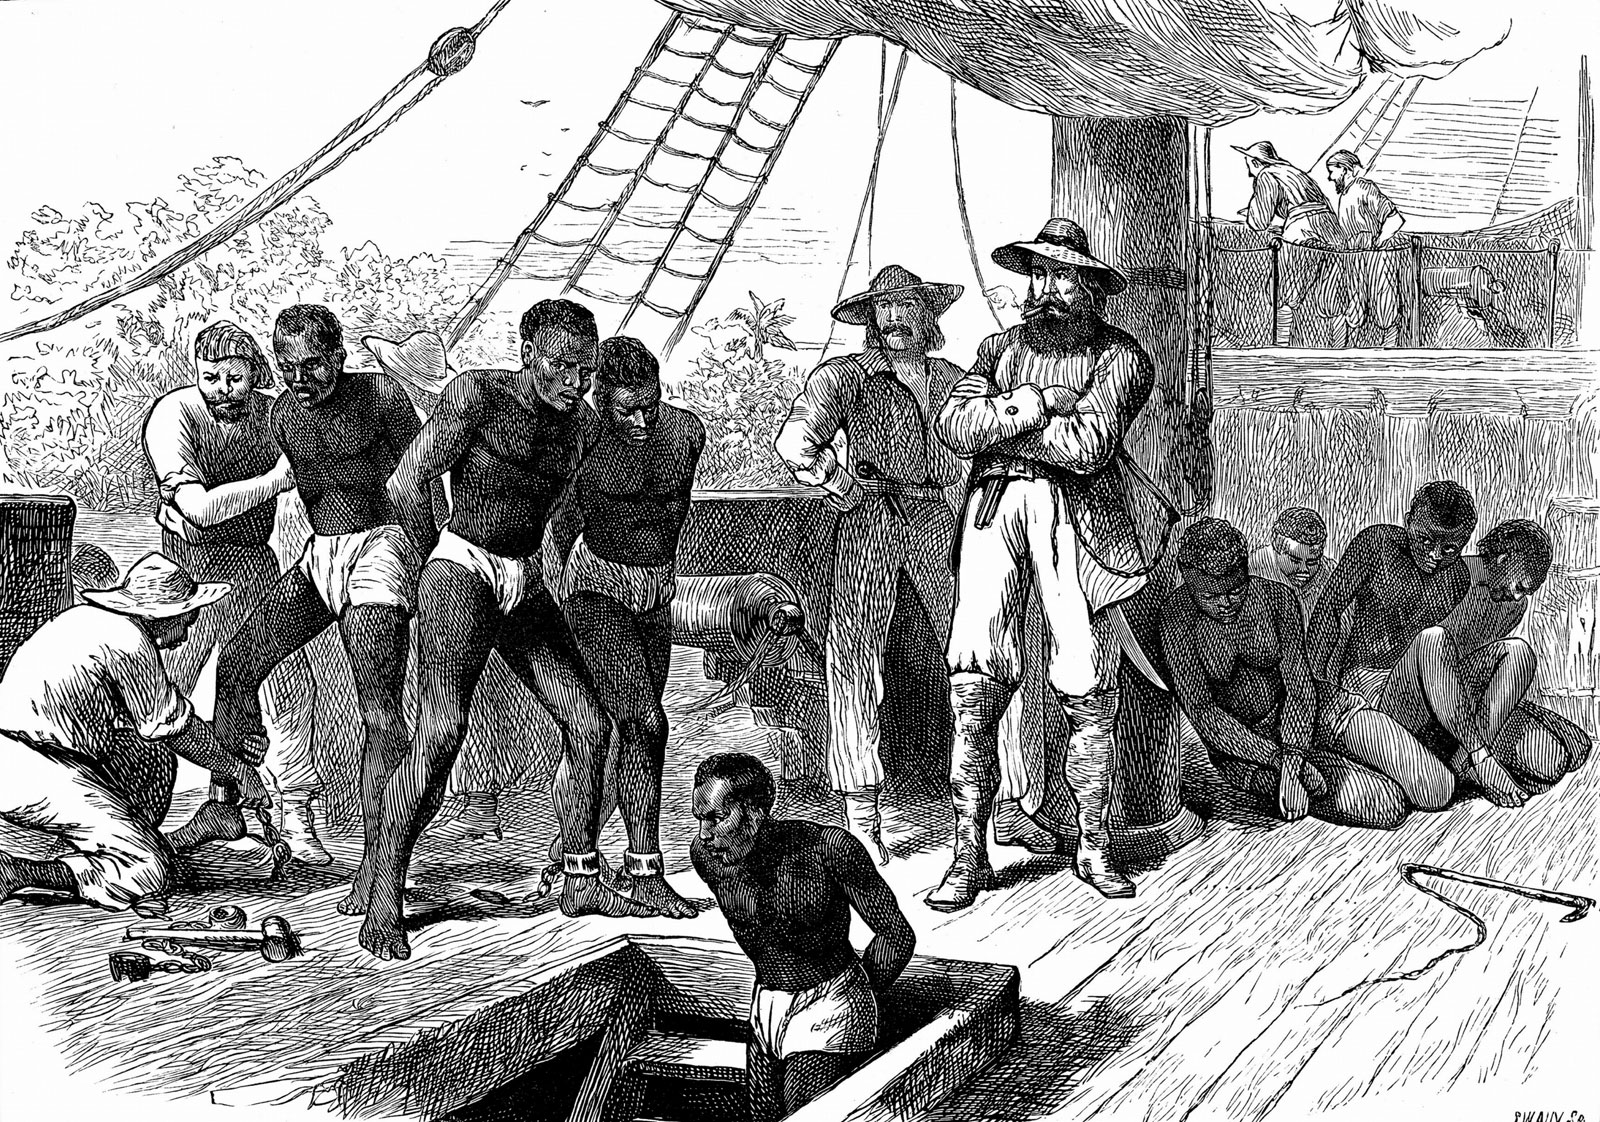 captives African ships Slave Coast slave trade 1880